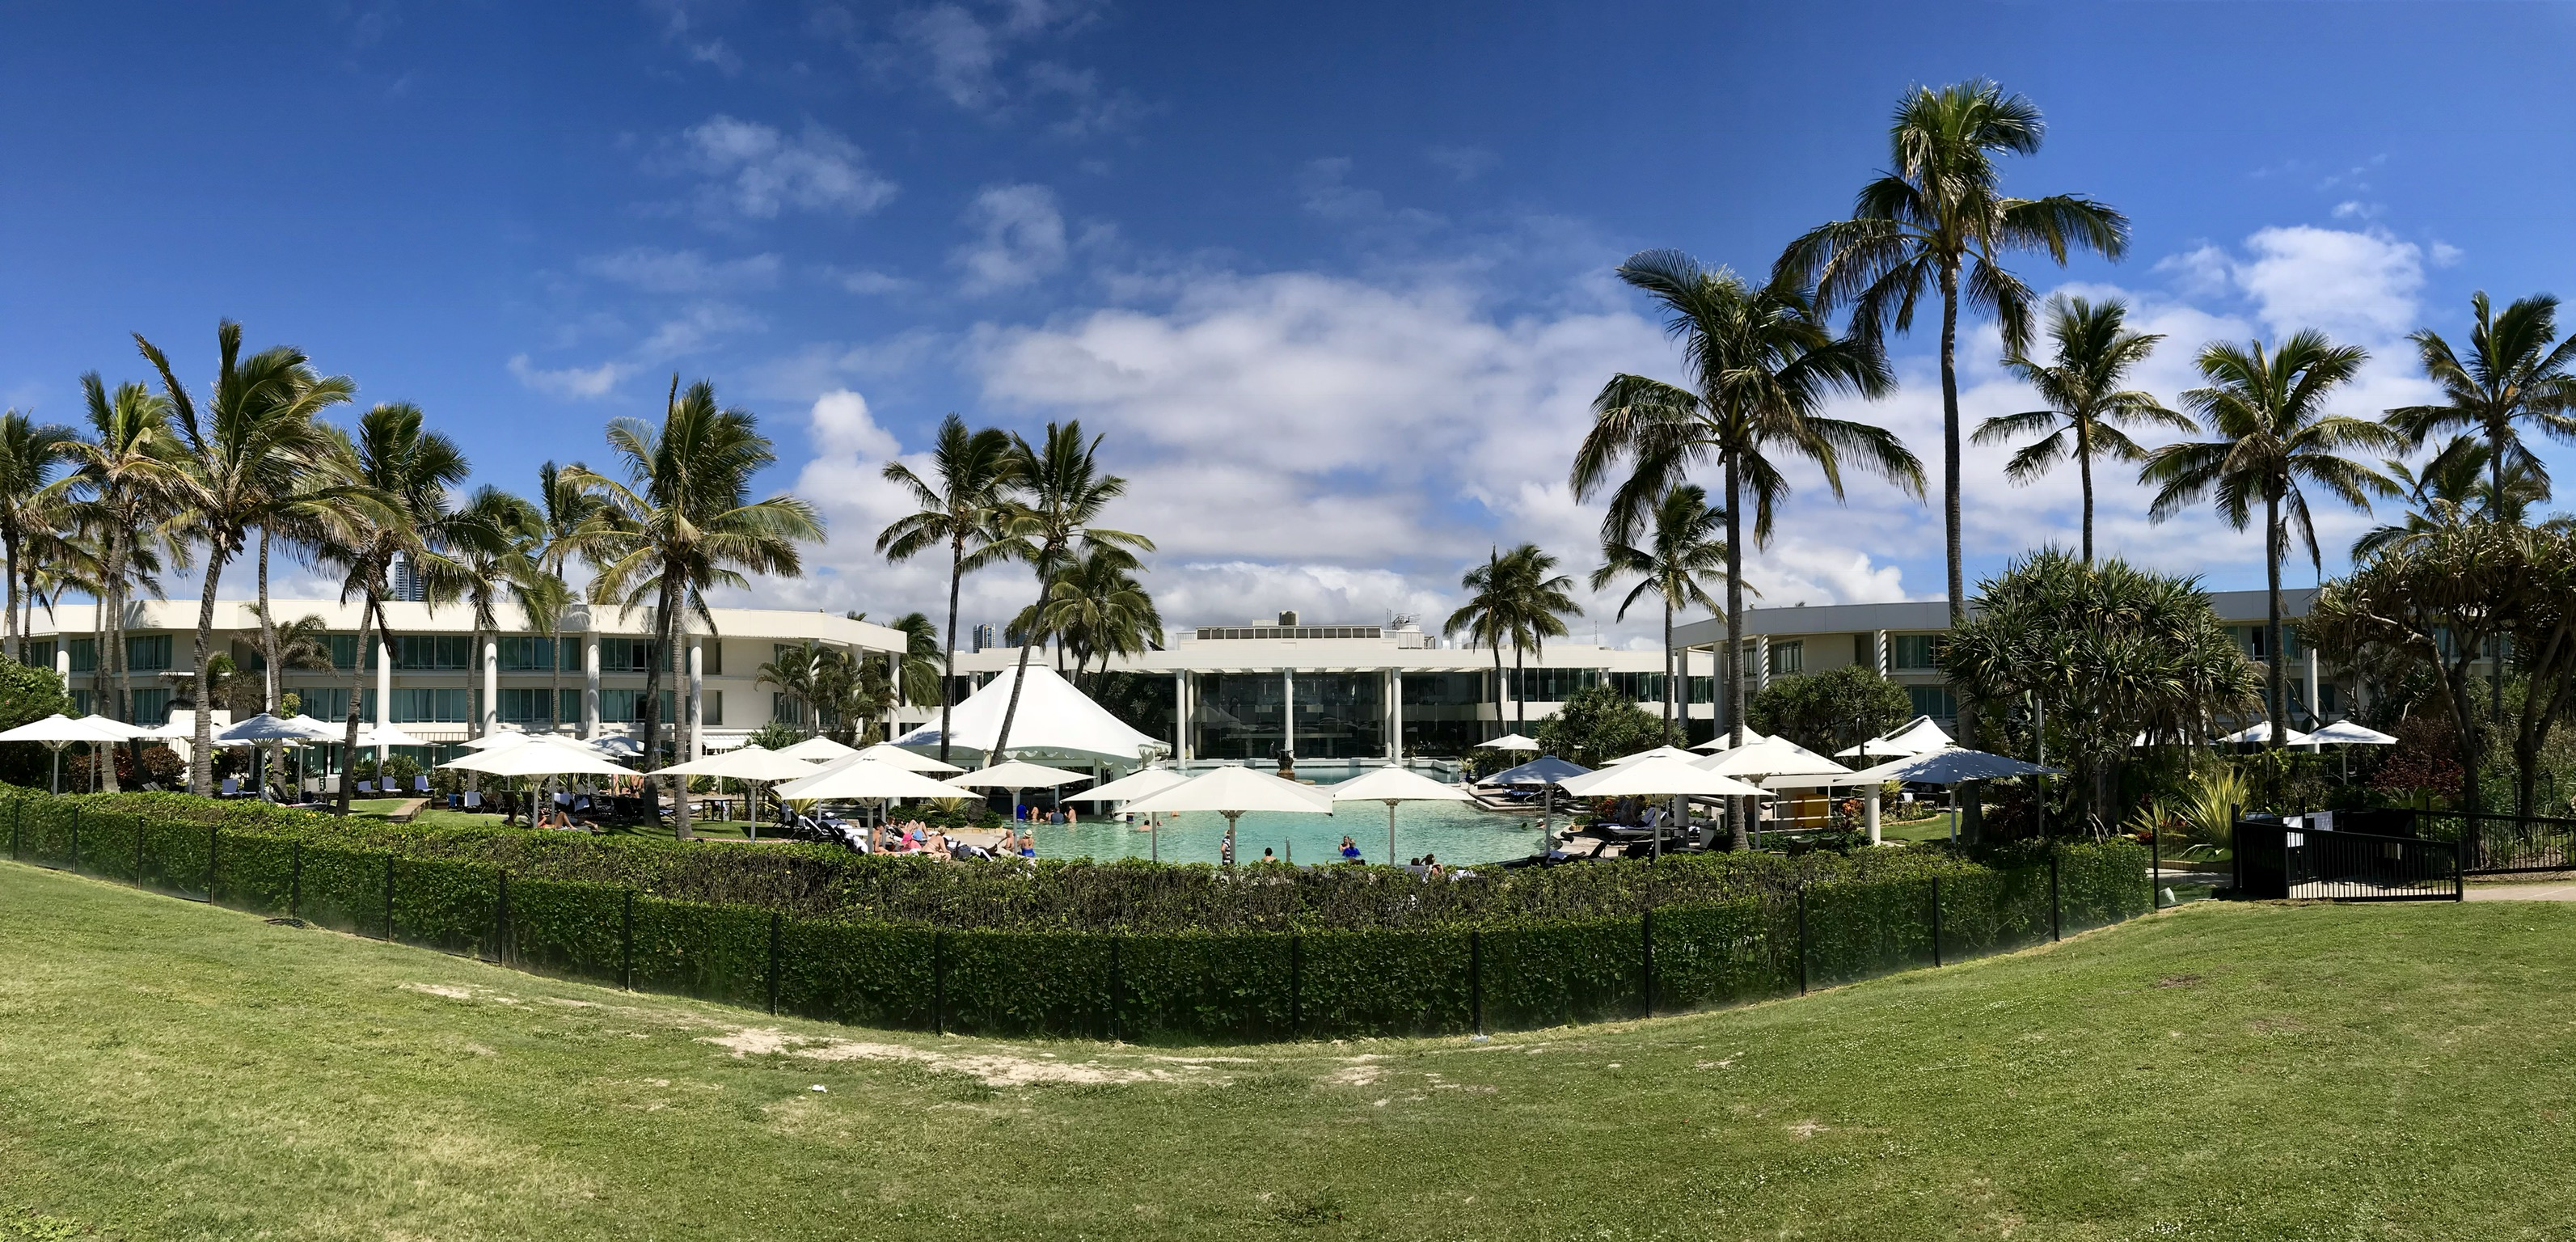 File:Sheraton Grand Mirage Resort, Gold Coast seen from the